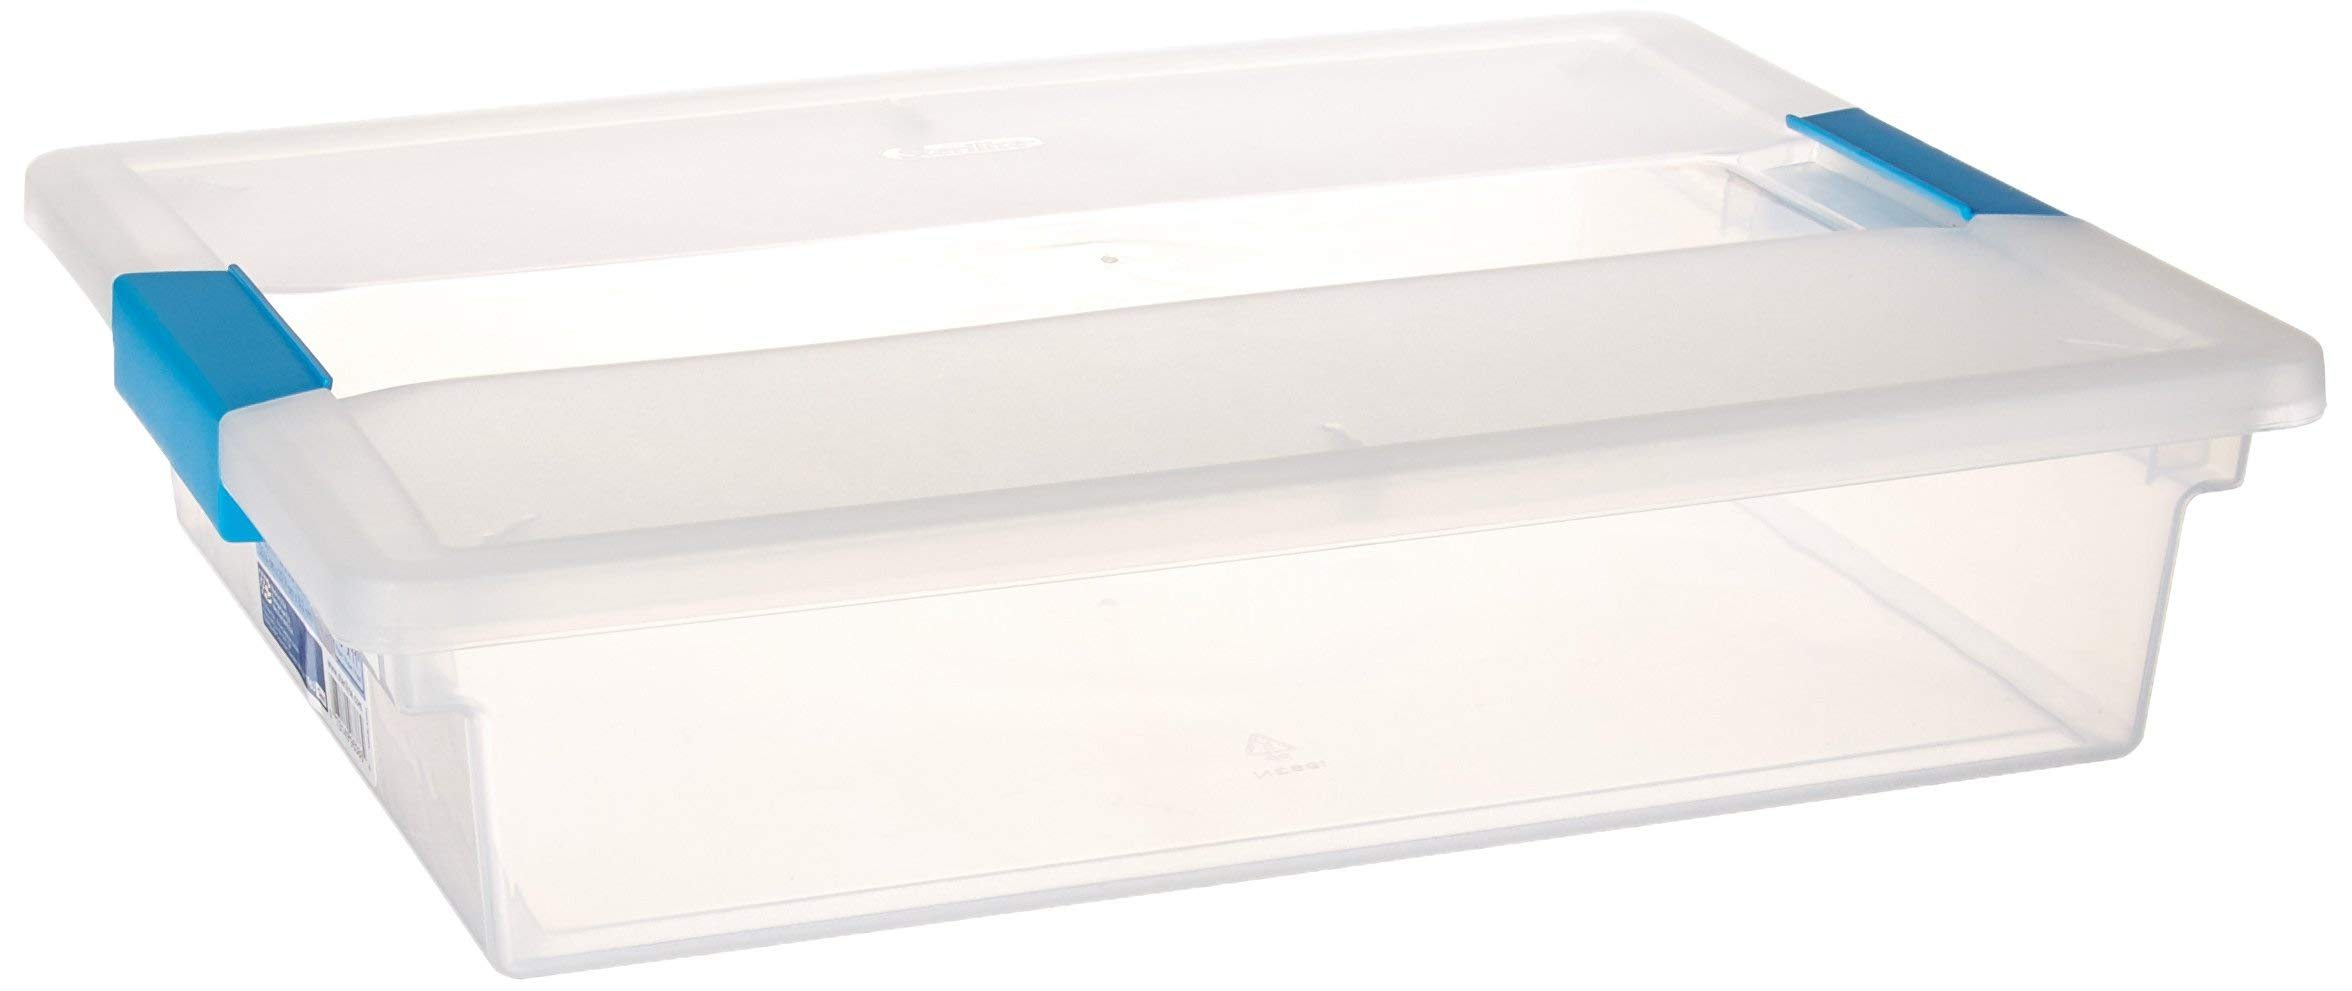 Sterilite 19638606 Large Clip Box, Clear with Blue Aquarium Latches, 6-Pack (Renewed) by STERILITE